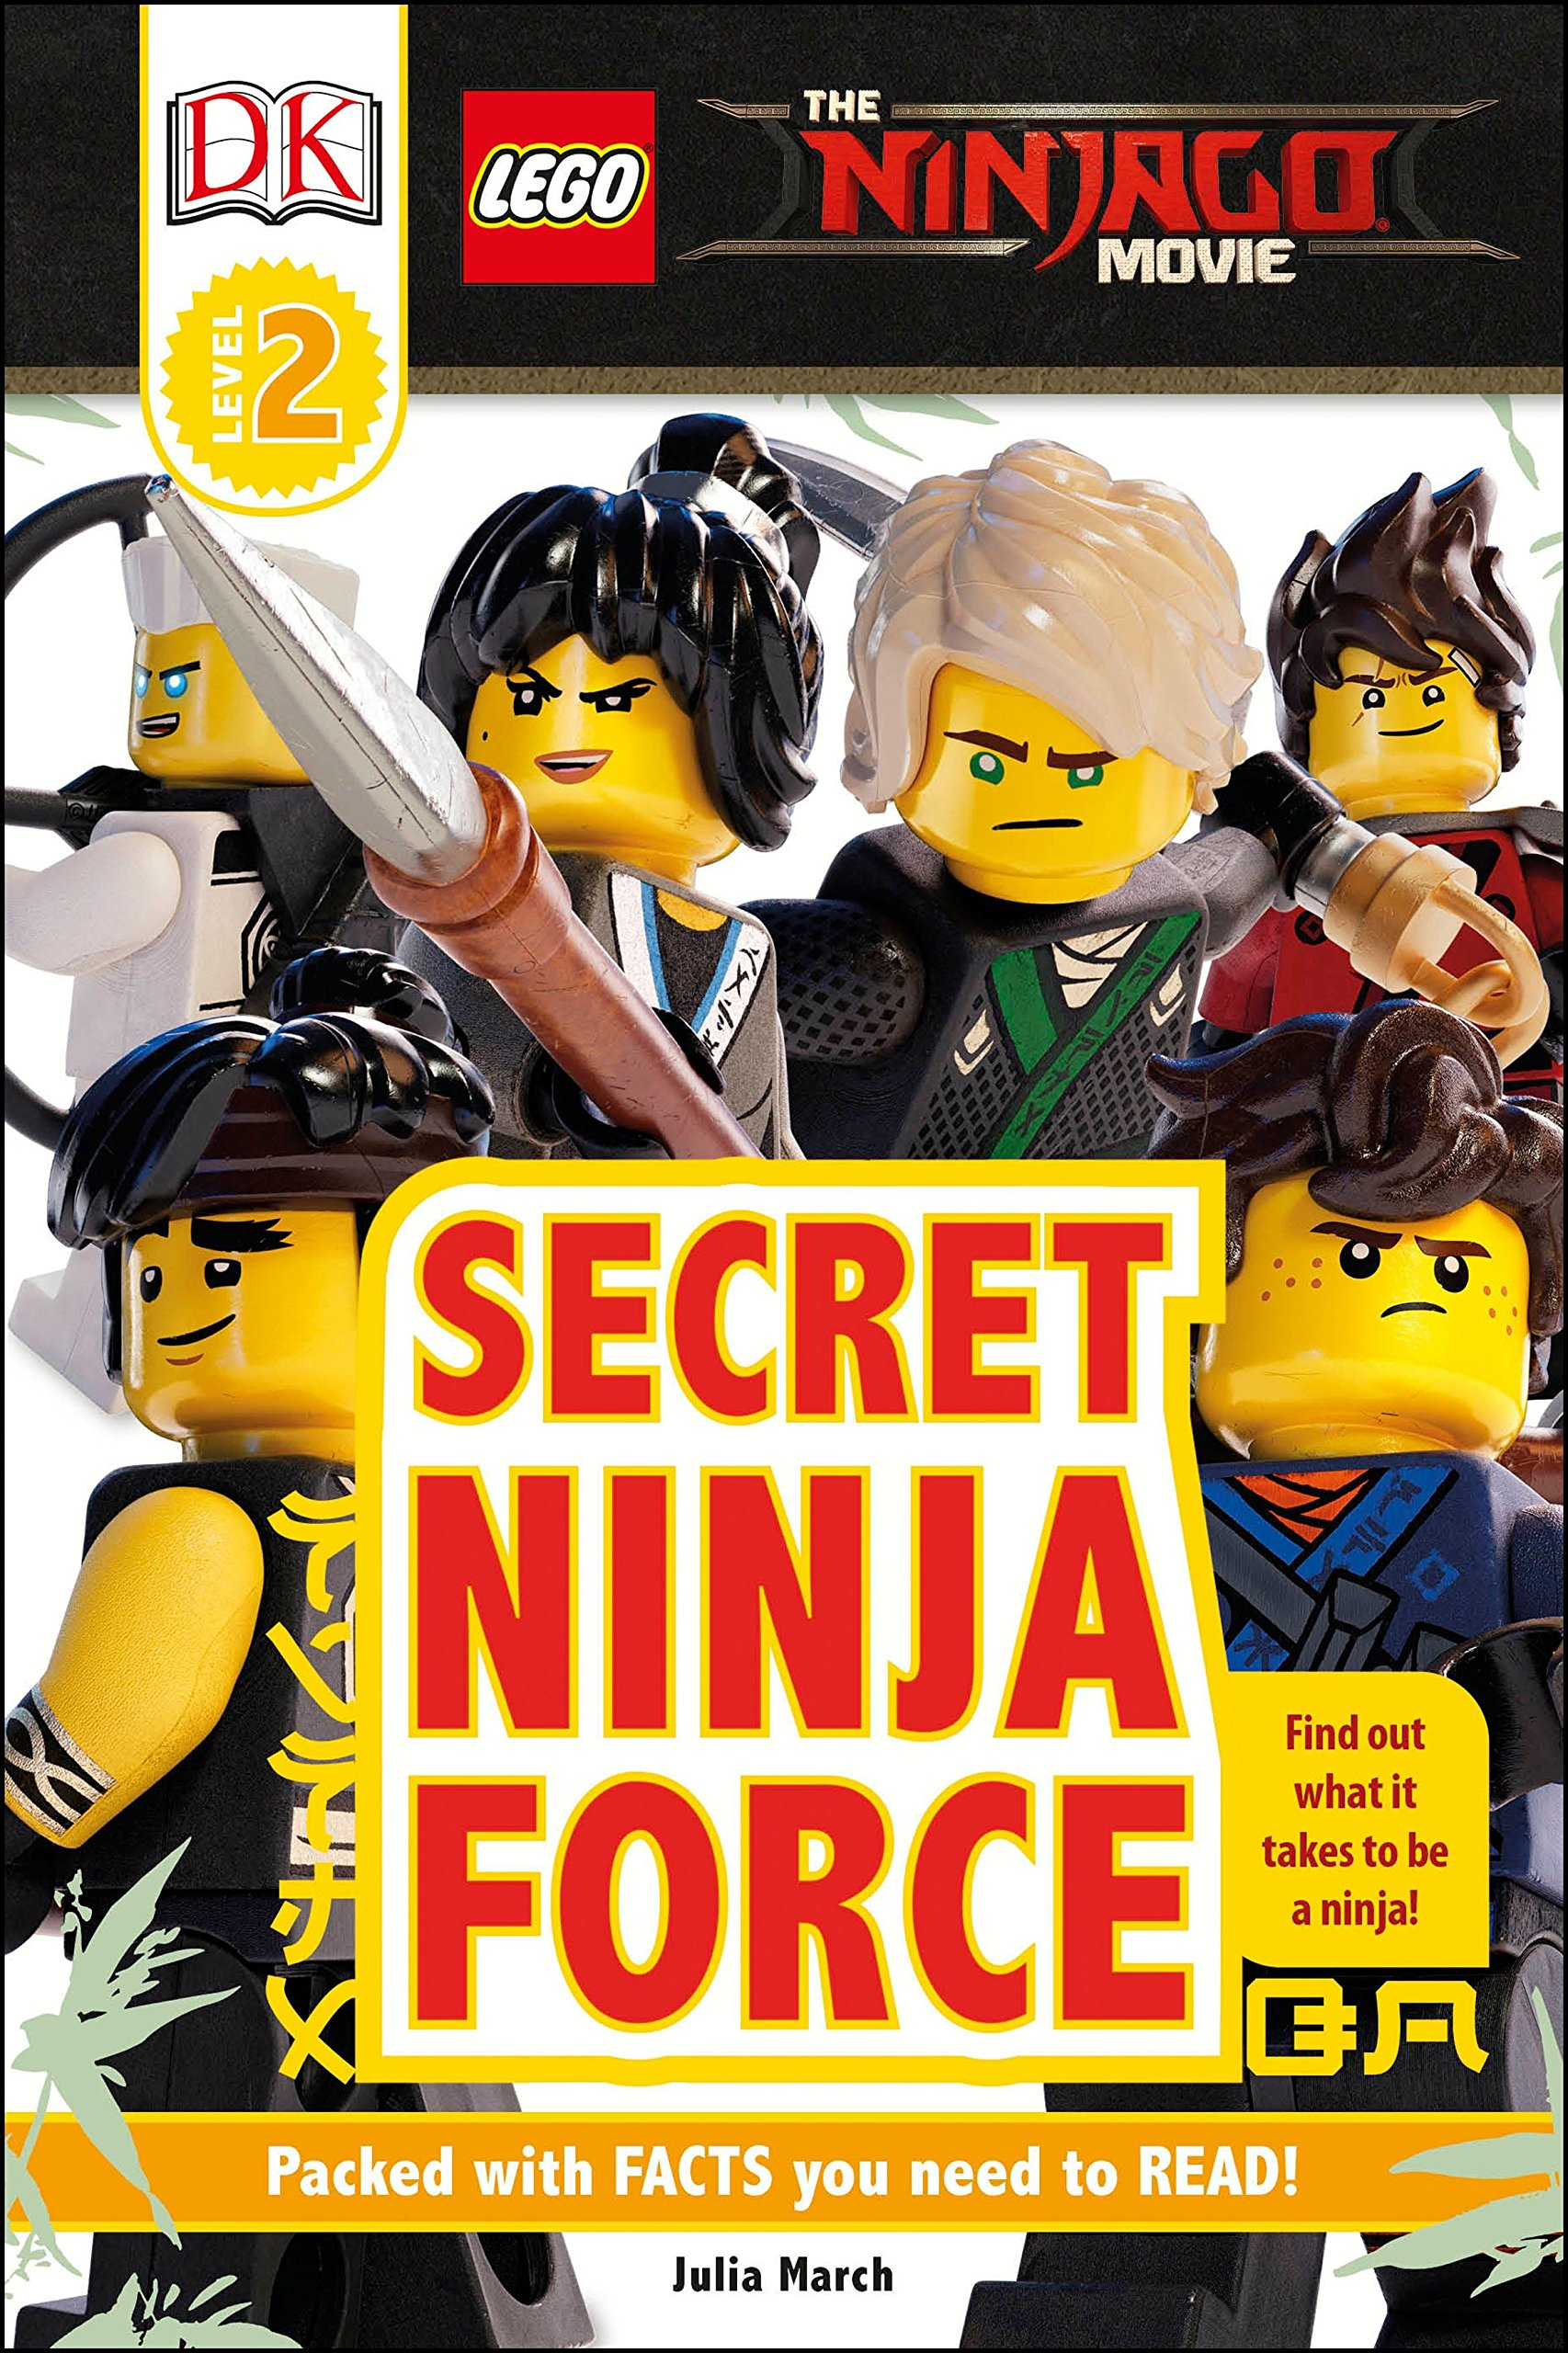 Amazon.com: DK Readers L2: The LEGO® NINJAGO® MOVIE : Secret ...